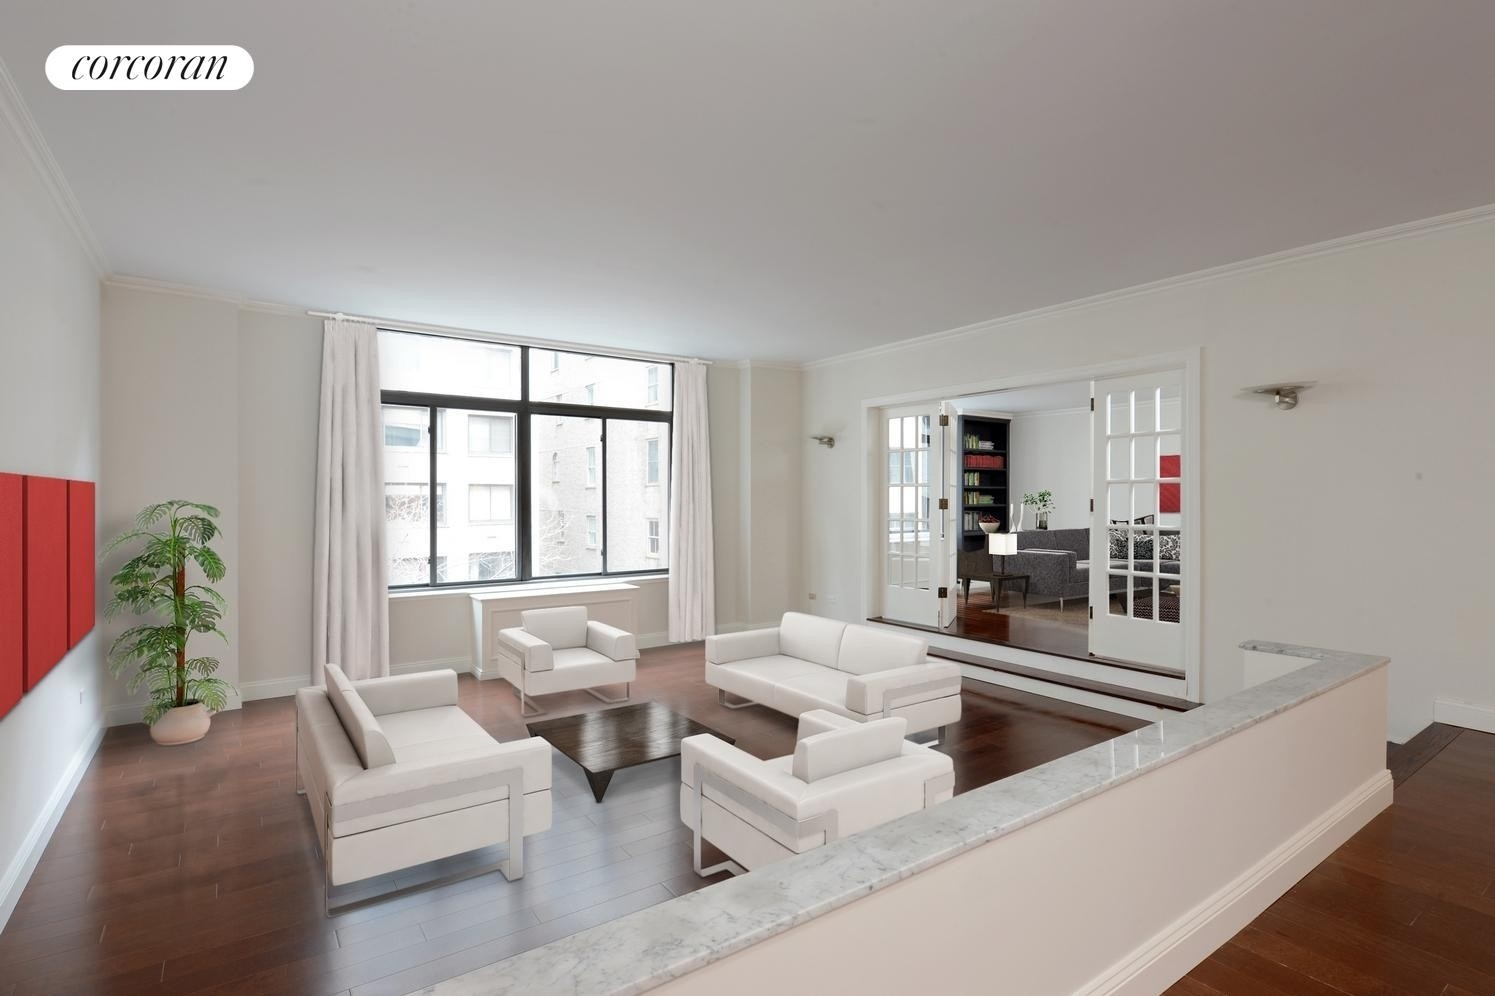 Condominium at The Wakefield, 525 East 80th St, 4F New York